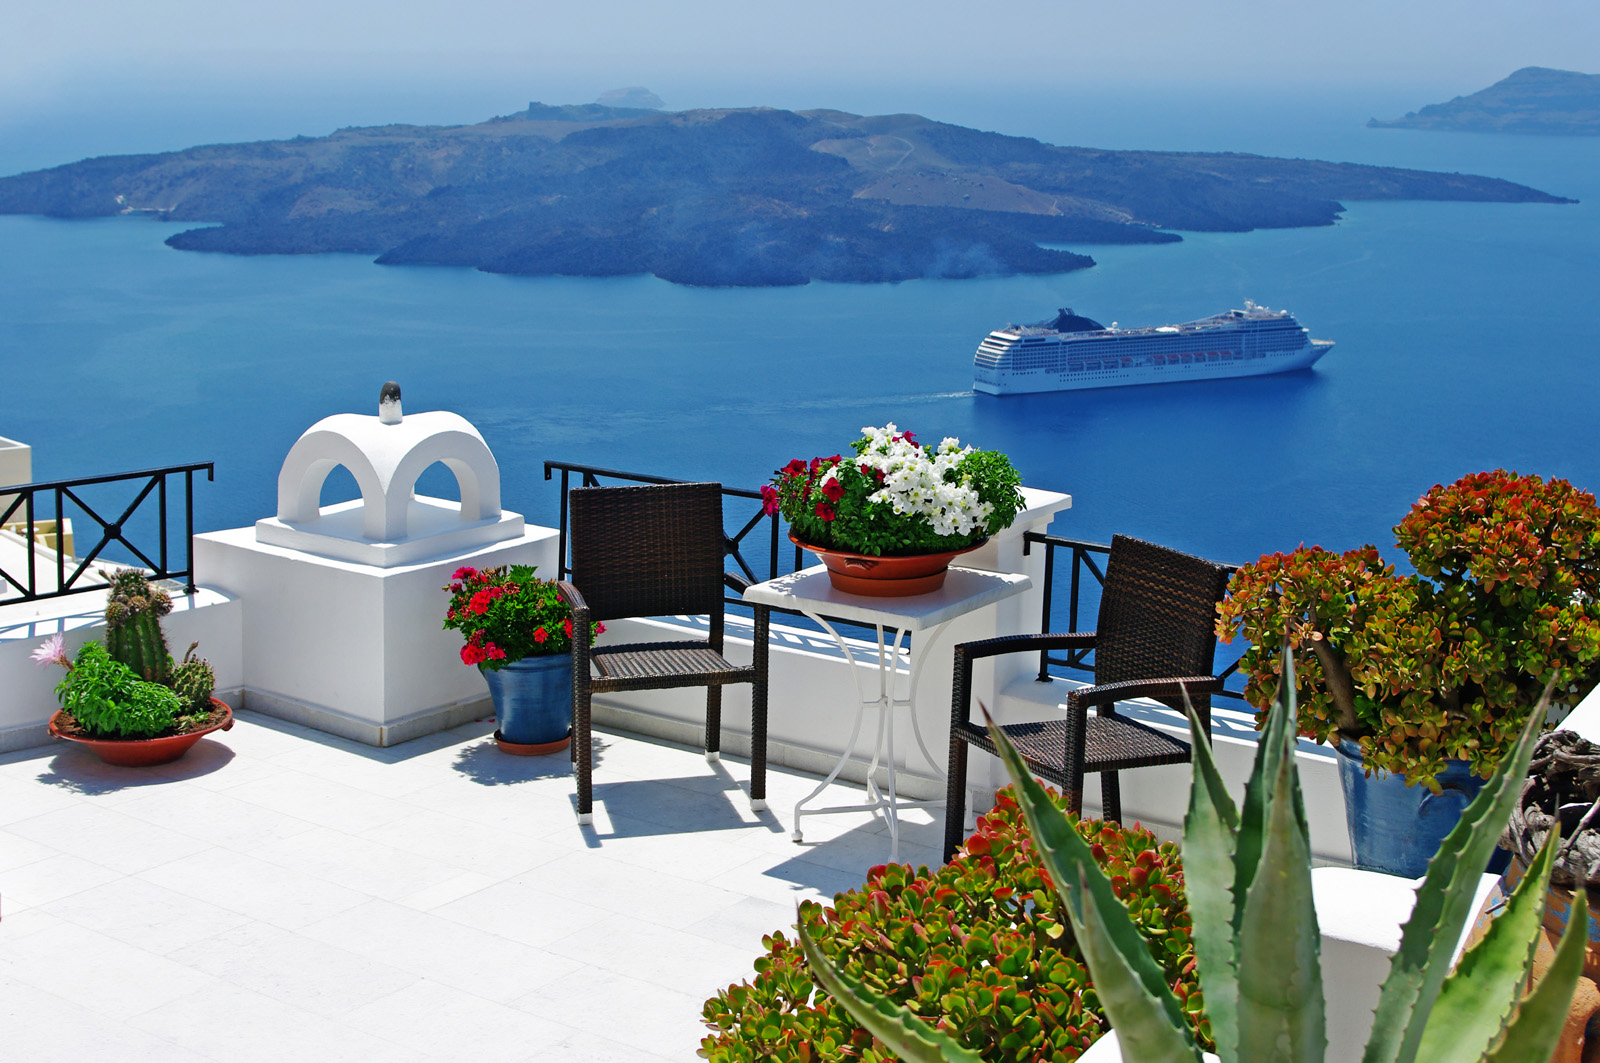 Greece Santorini island scenery 51066